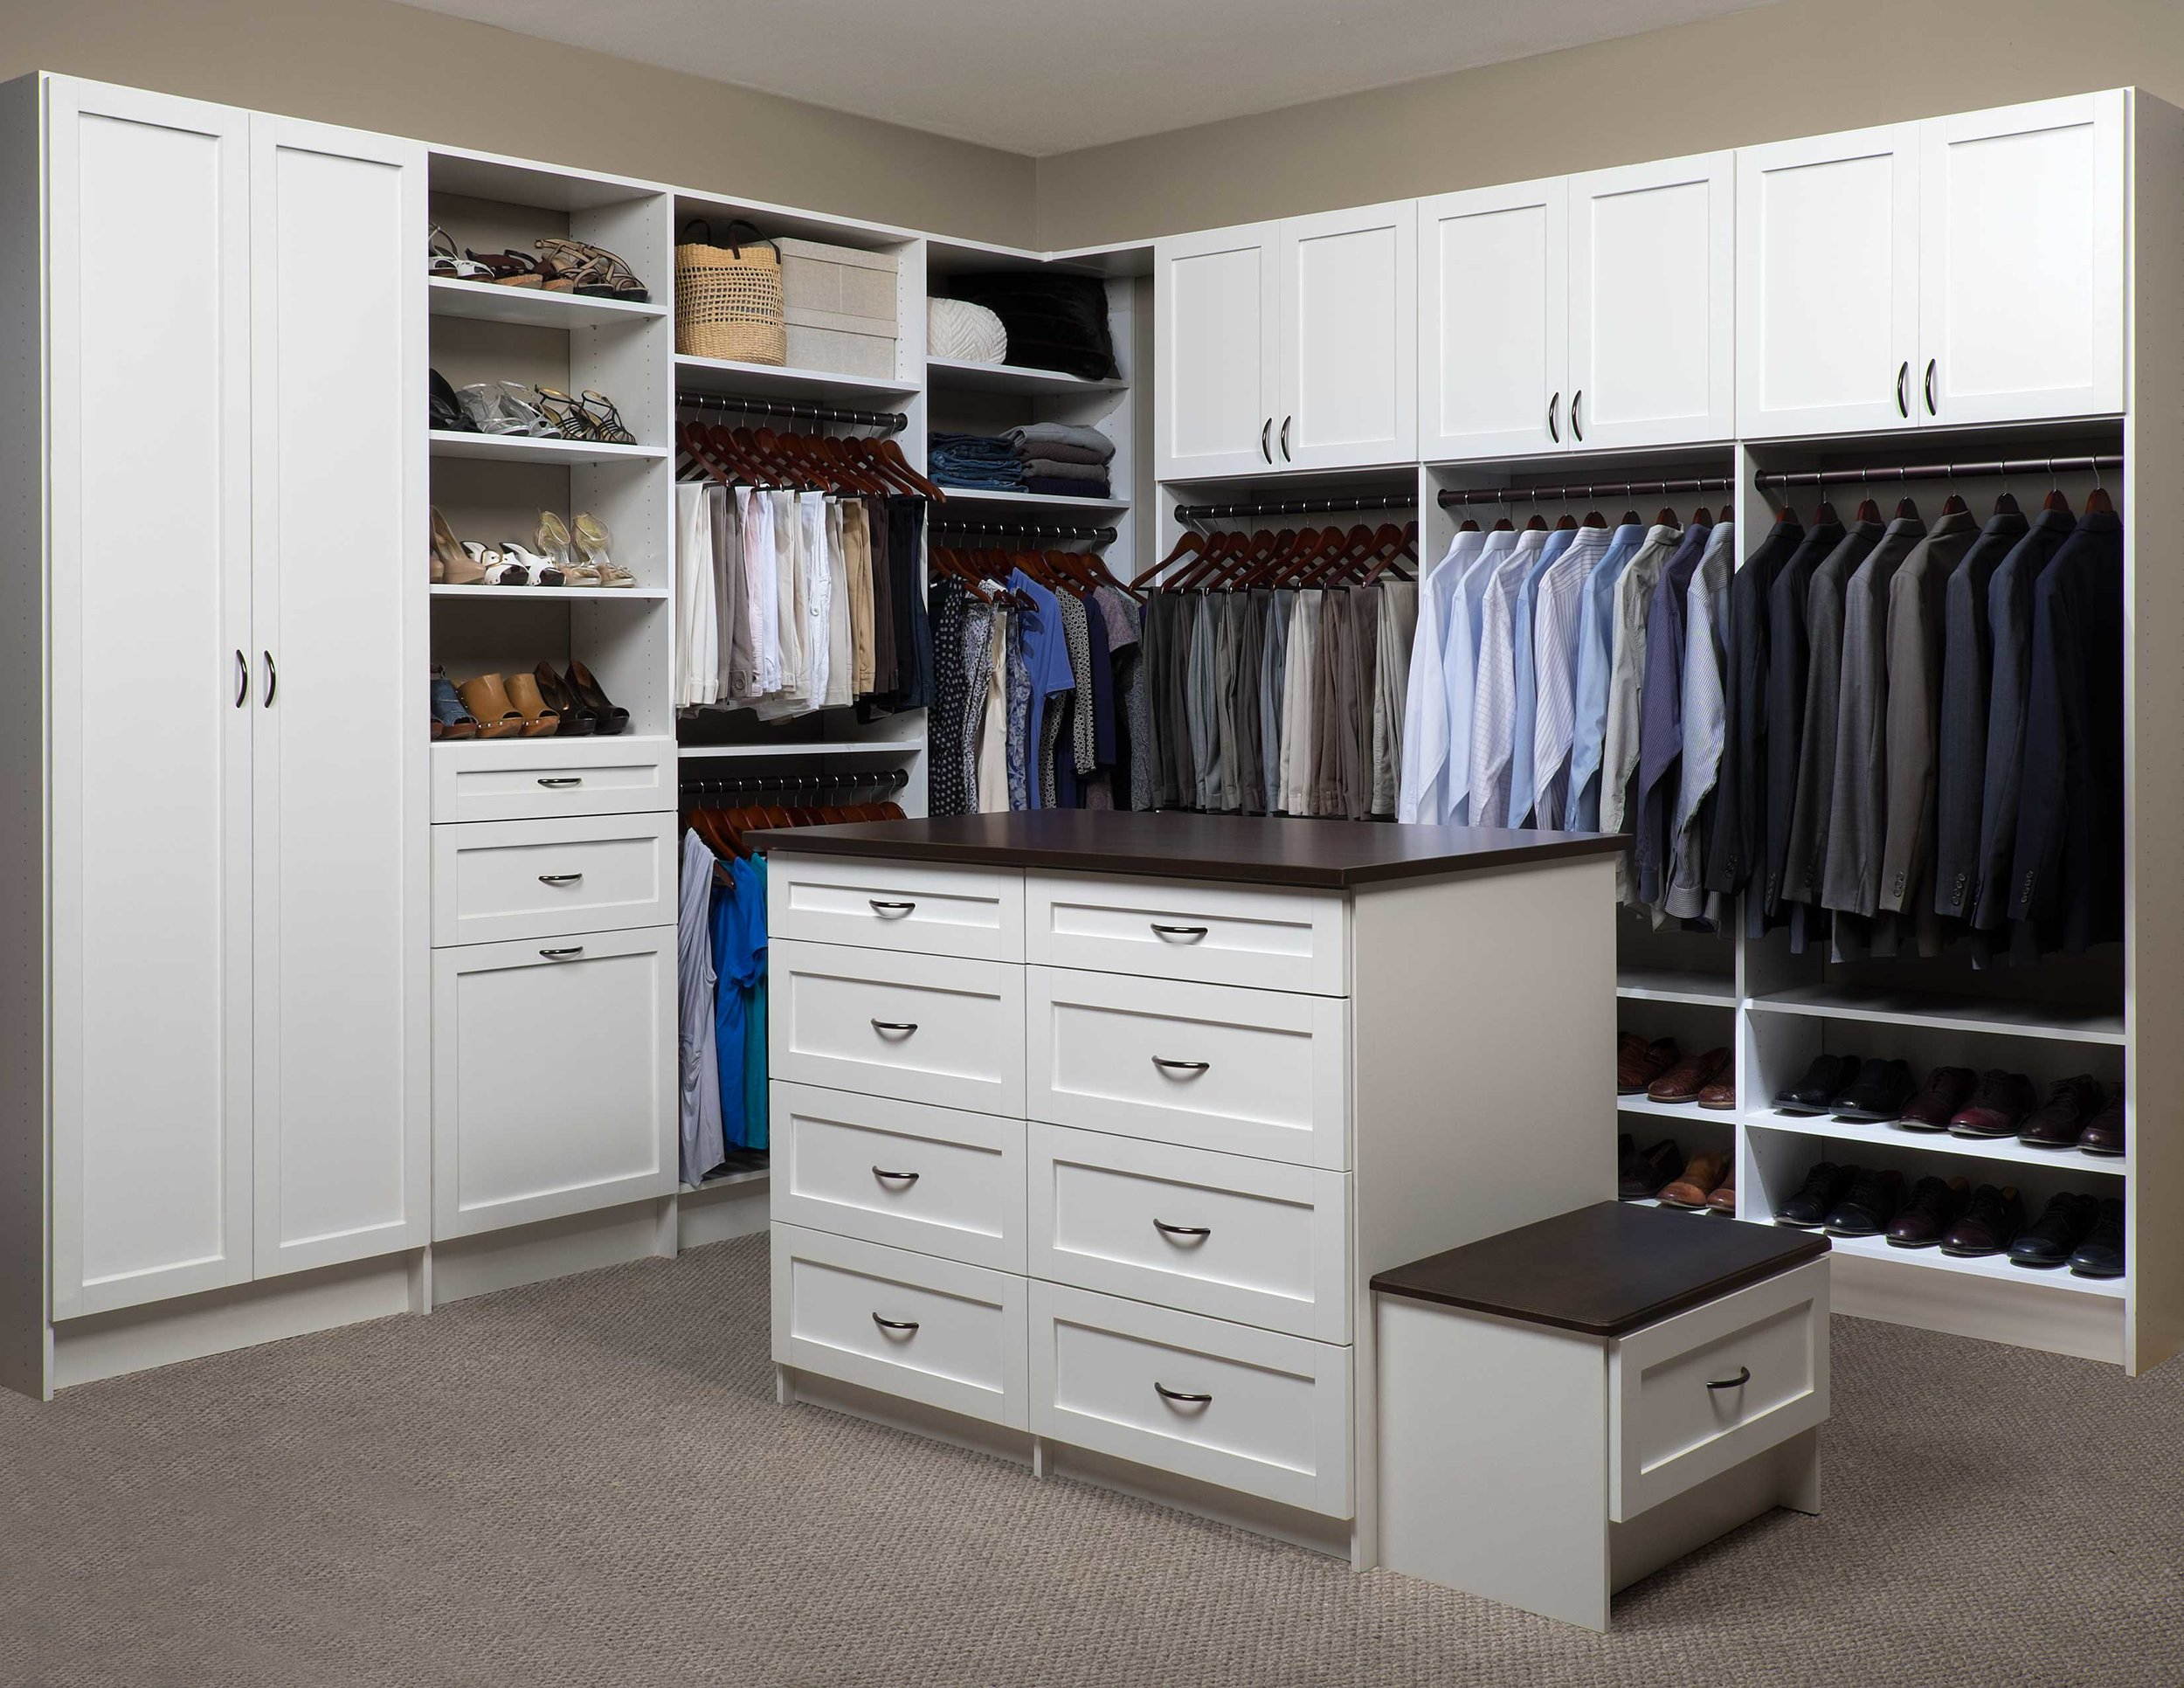 Most Popular New Closet Trends For 2018